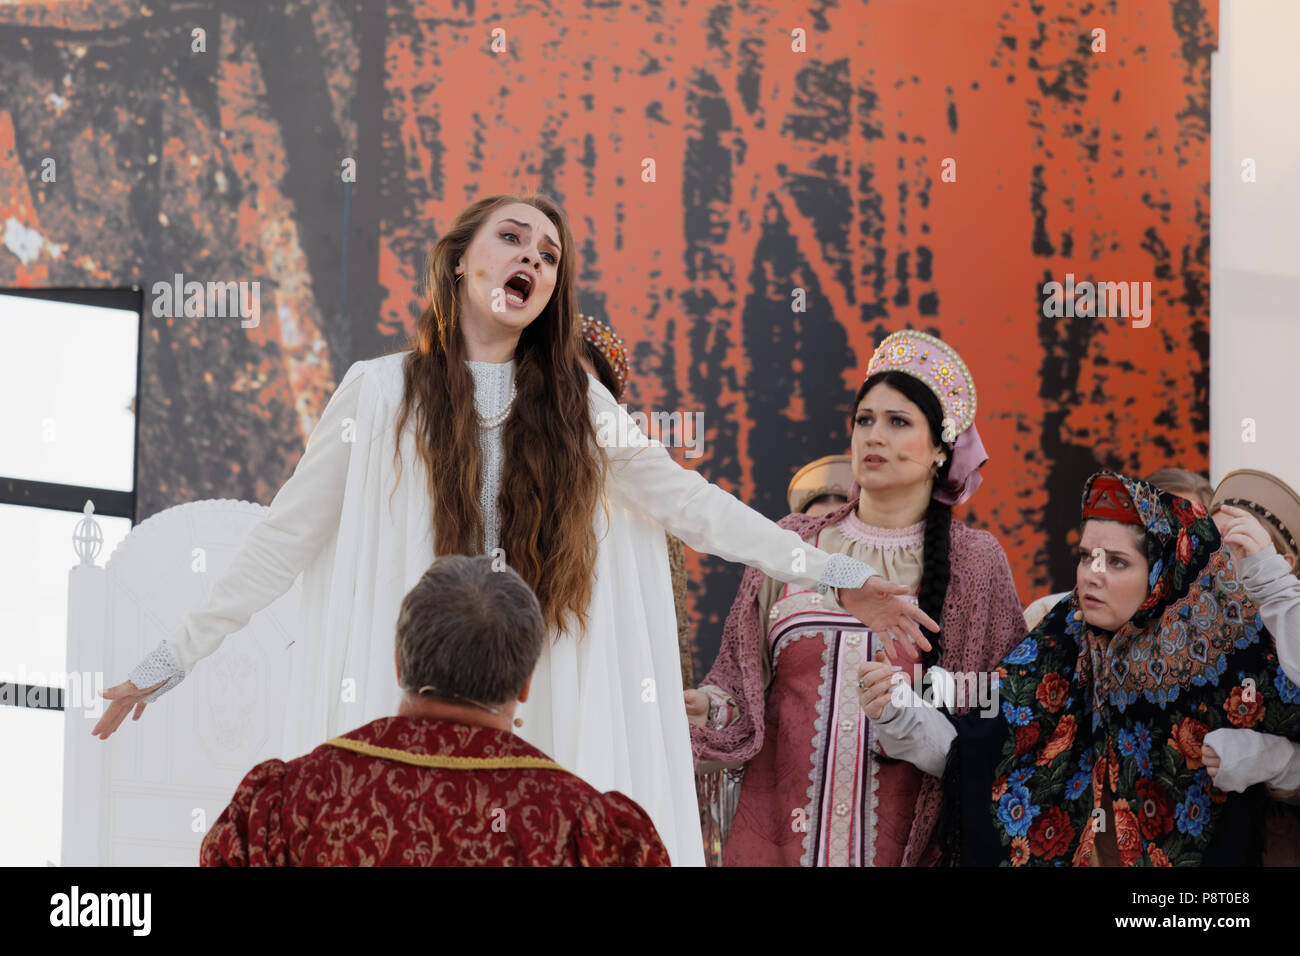 St. Petersburg, Russia - July 12, 2018: Olga Cheremnykh as Marfa (left) and Anastasia Samarina as Dunyasha in the opera The Tsar's Bride of N. Rimsky- - Stock Image